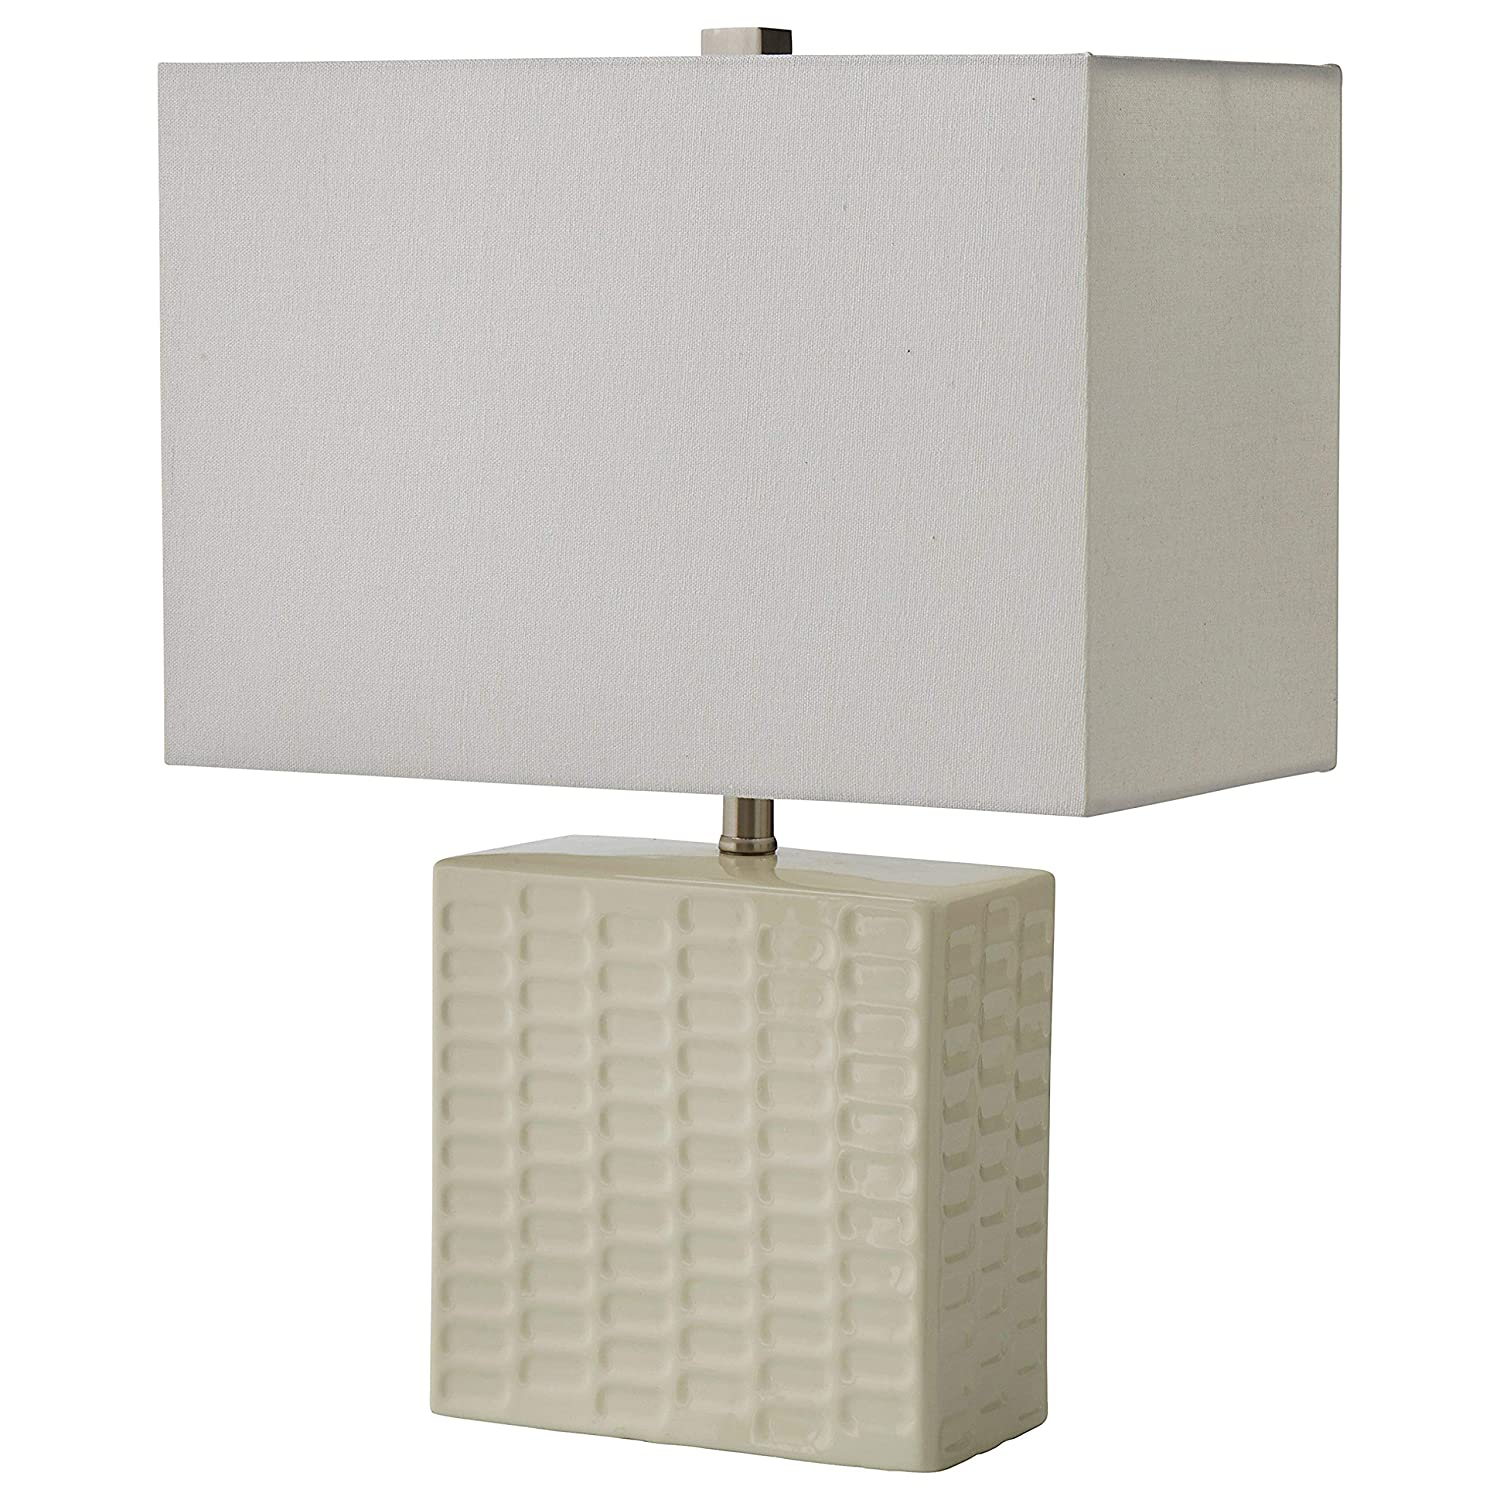 """Stone & Beam Modern Square Textured Lamp With Bulb, 20.3""""H, White"""